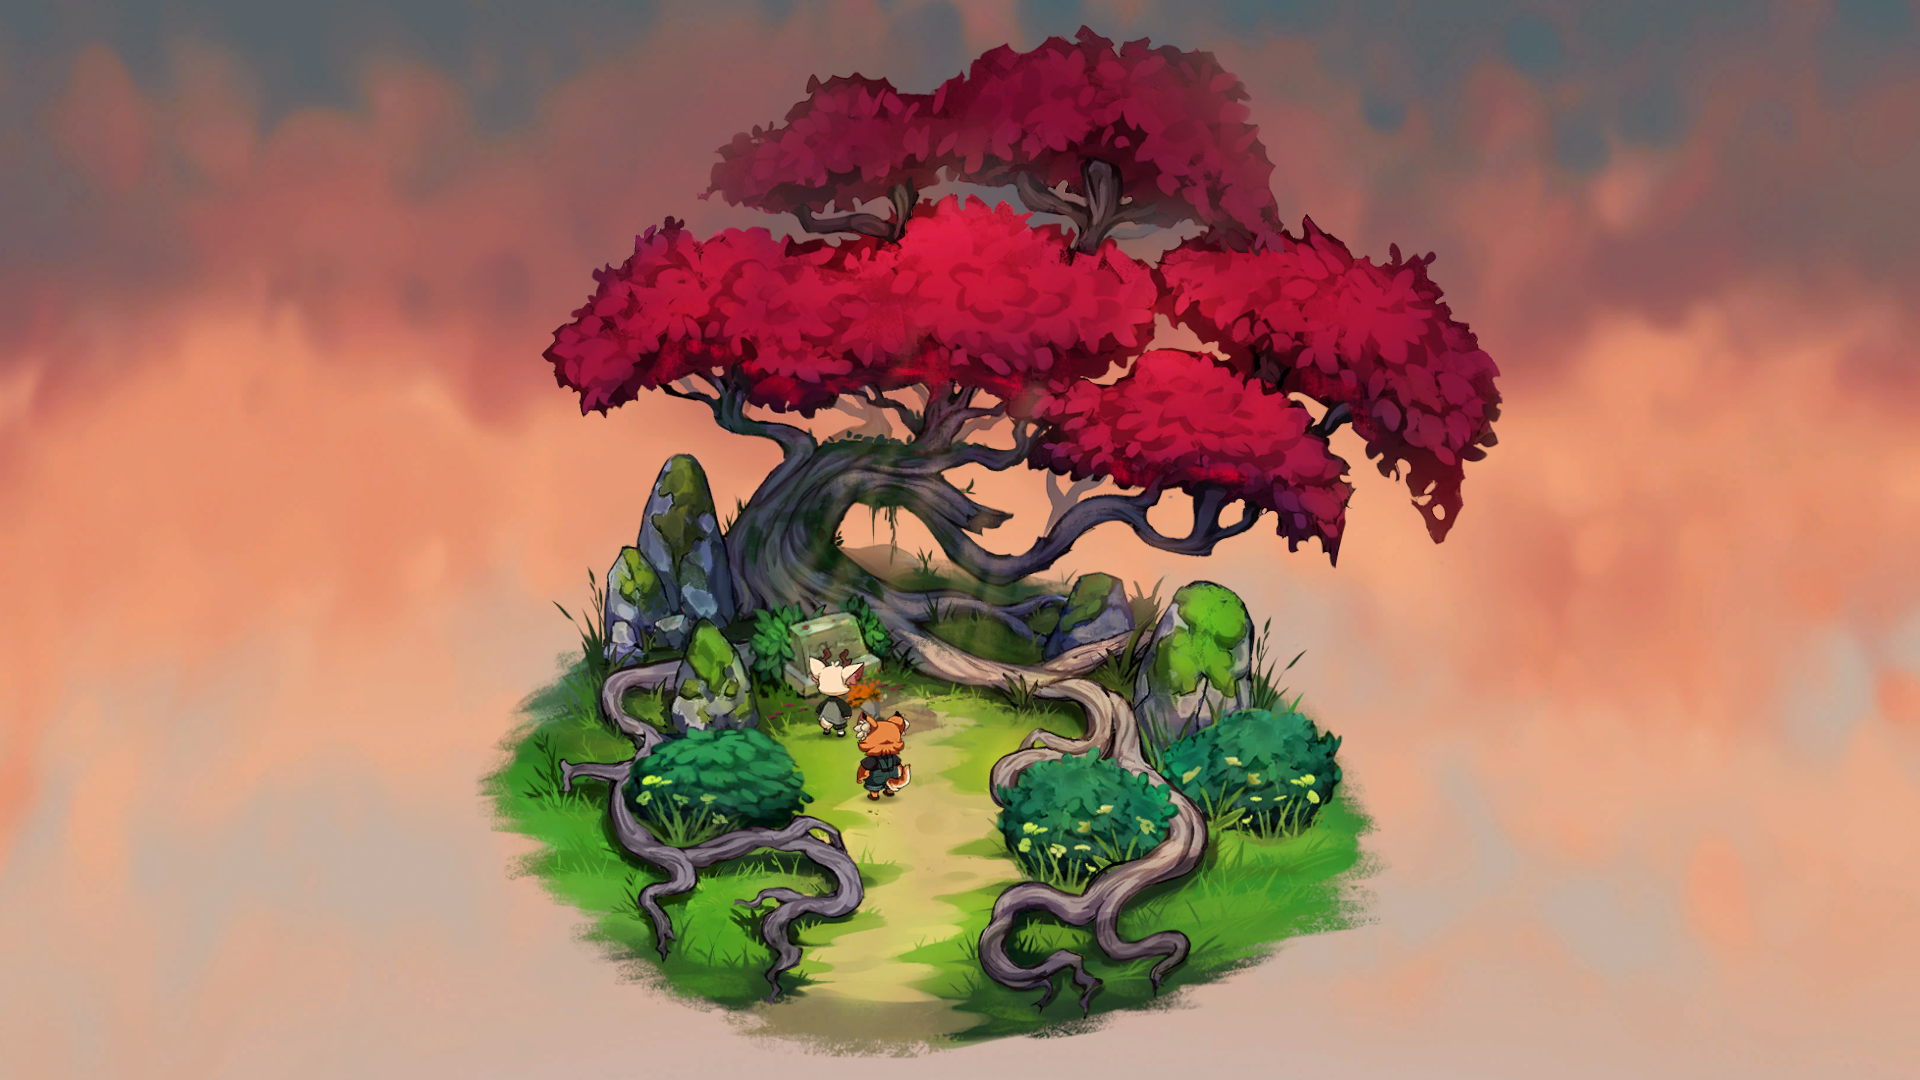 Luka and Rolo at a mystical tree where Luka visits a grave.